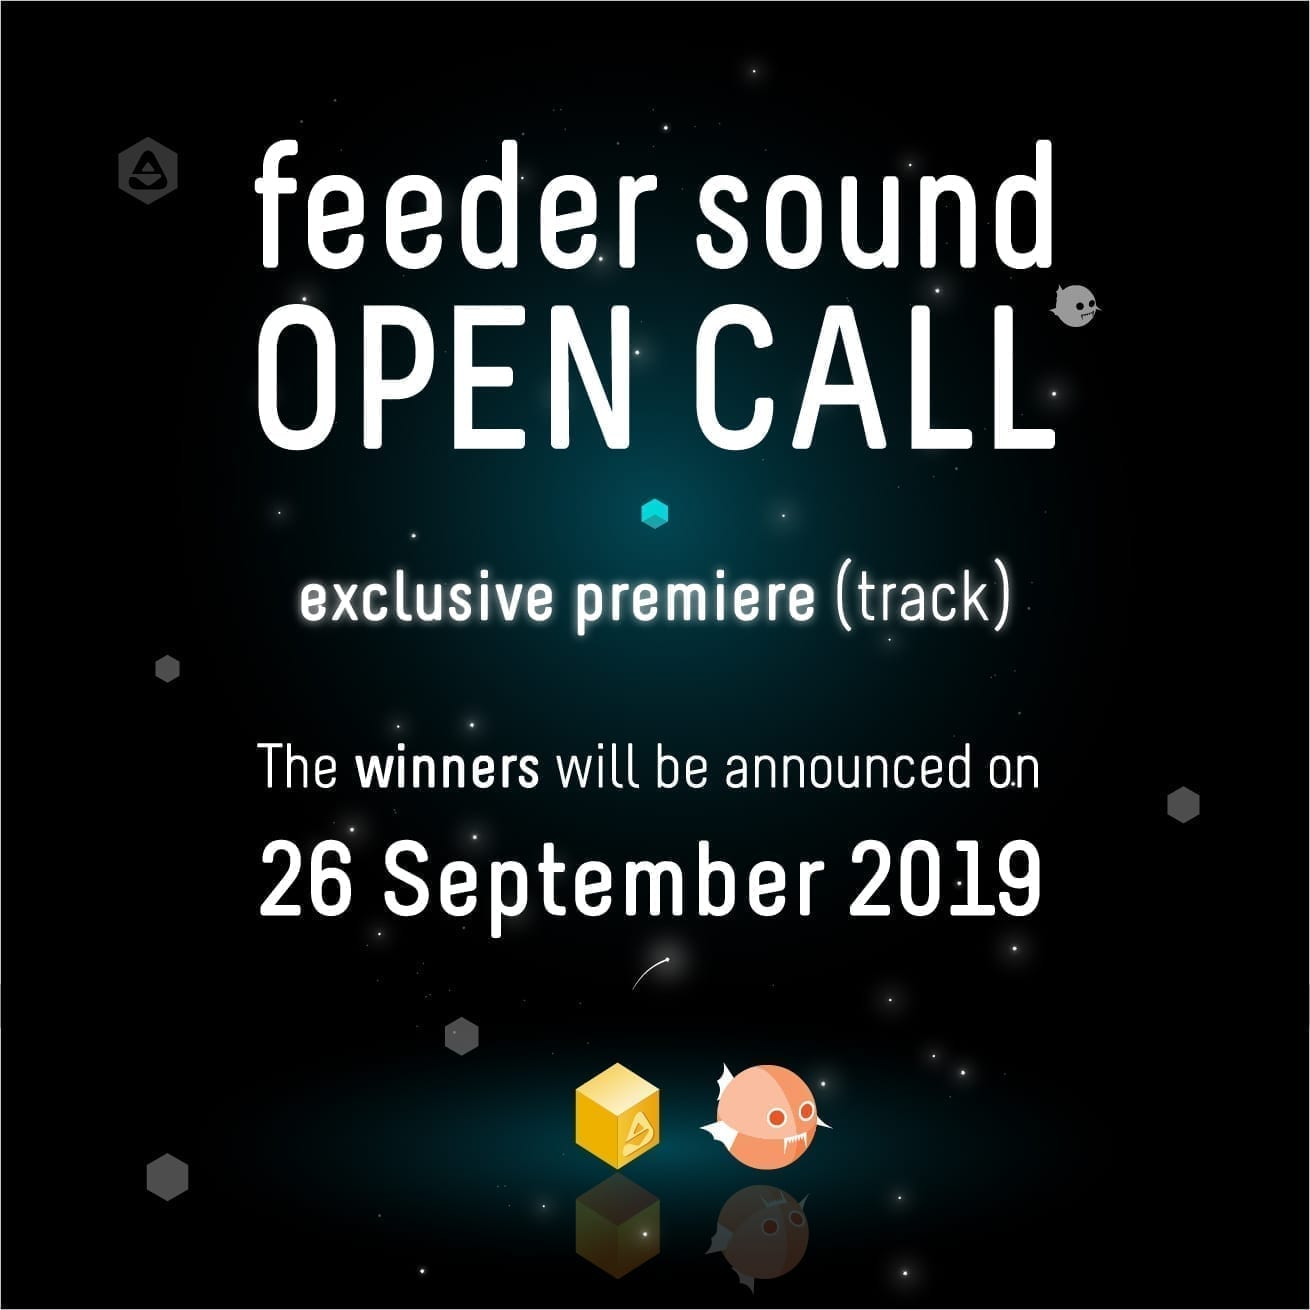 Listen to the applications received in the feeder sound OPEN CALL for producers